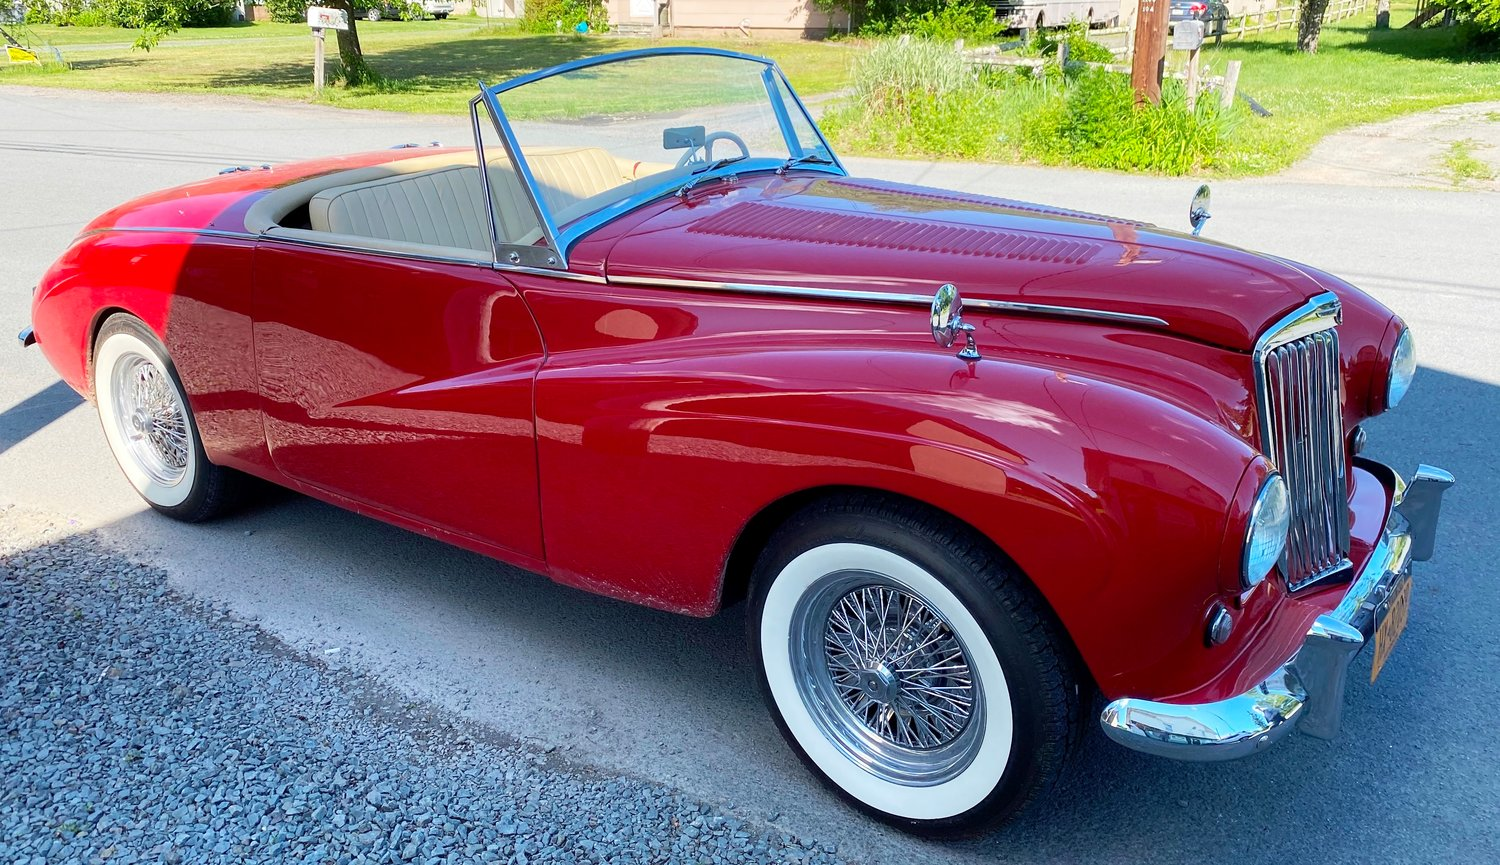 A 1955 Sunbeam Alpine MK III, one of only 21 in the world, will be on display at the event.